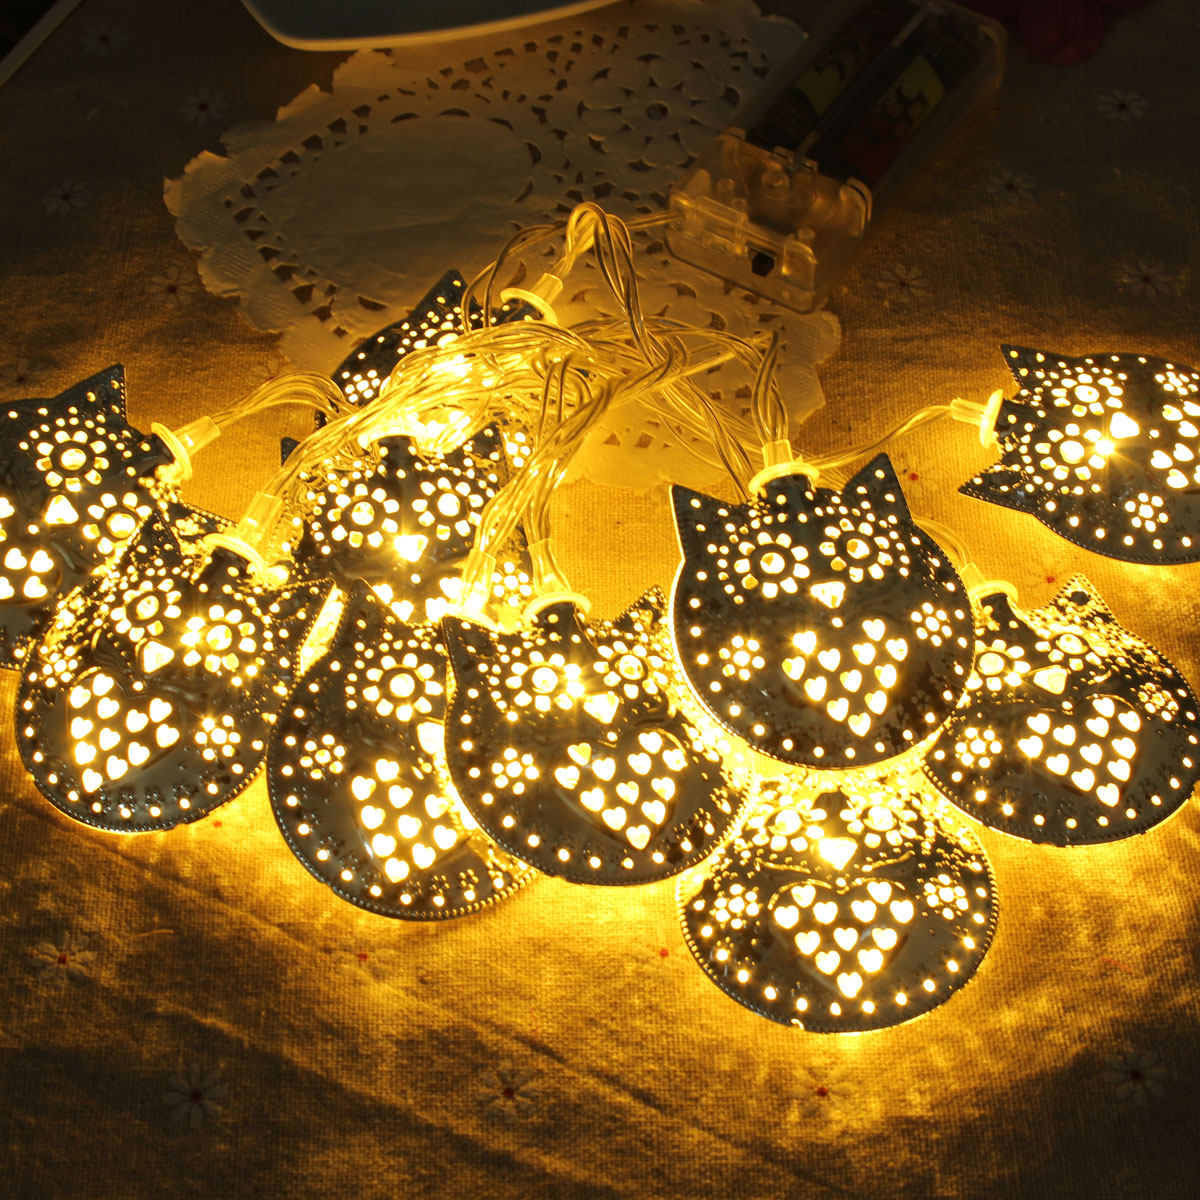 A String Of Holiday Lights Has 73 Light Bulbs In Series : 1.8m 10 LED Owl Party String Outdoor Garden Christmas Wedding Lights Lamps Decor eBay